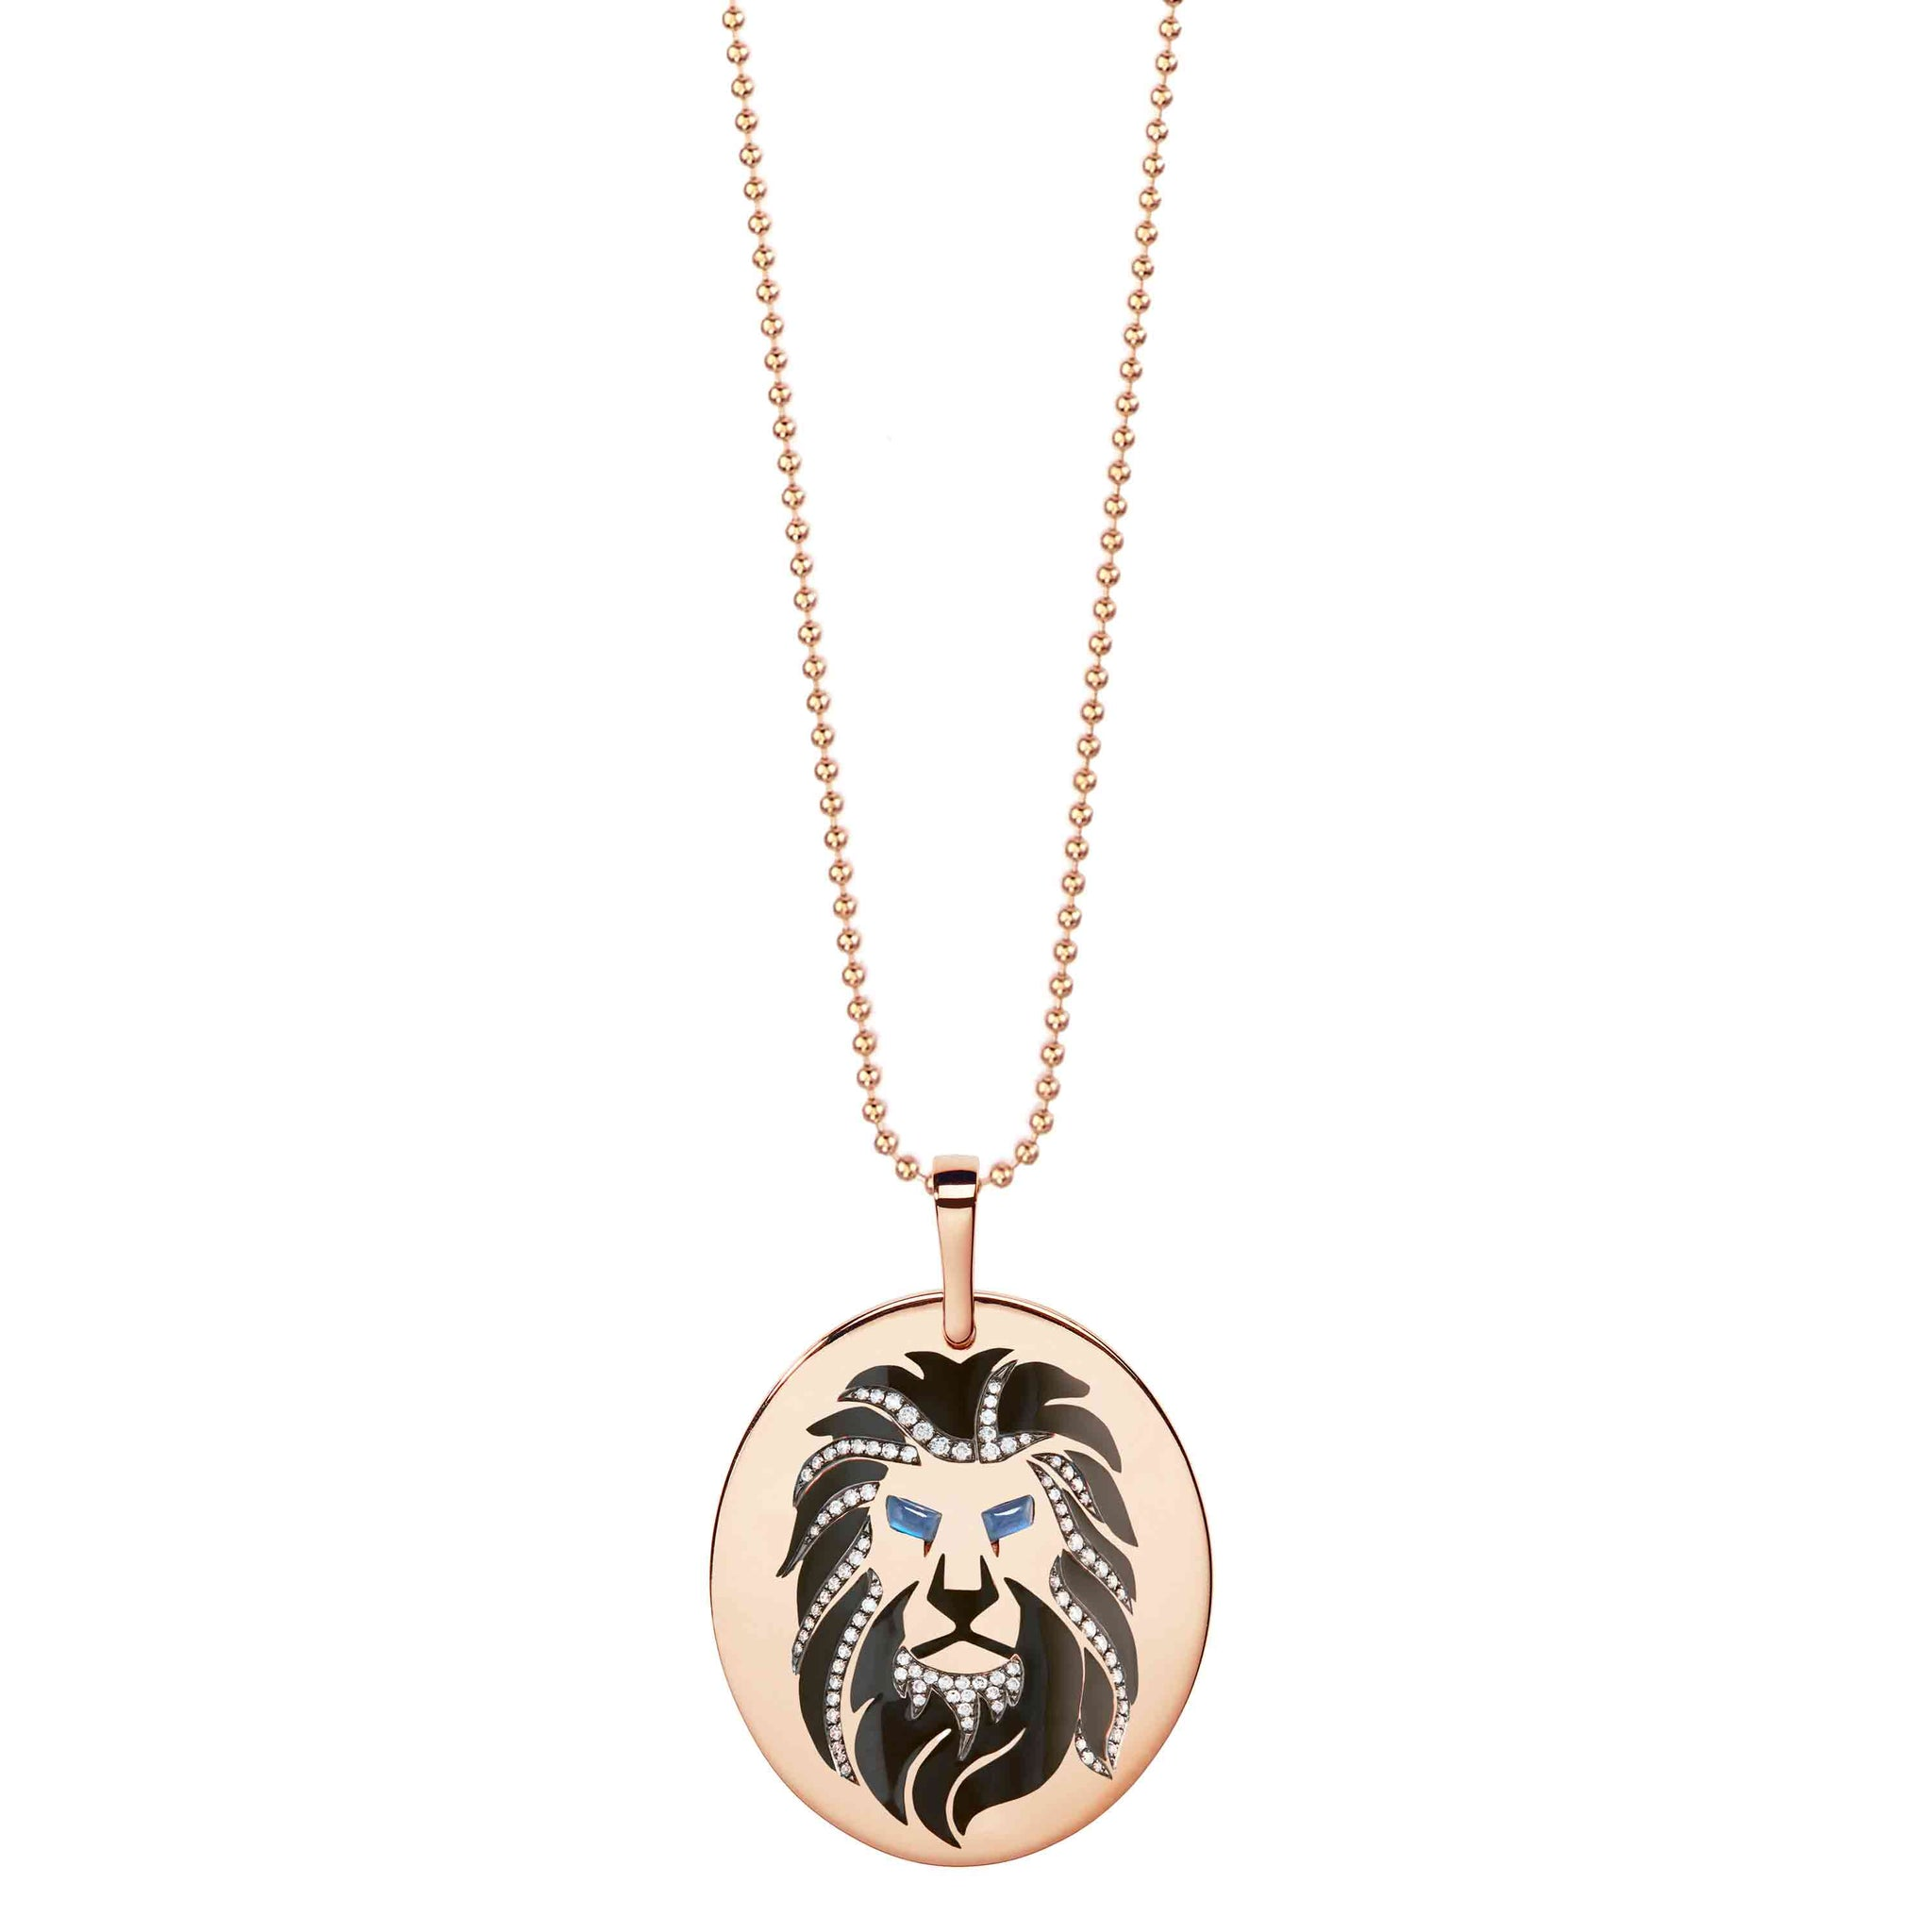 Diane Kordas 18k Gold Lion pendant with sapphires and diamonds